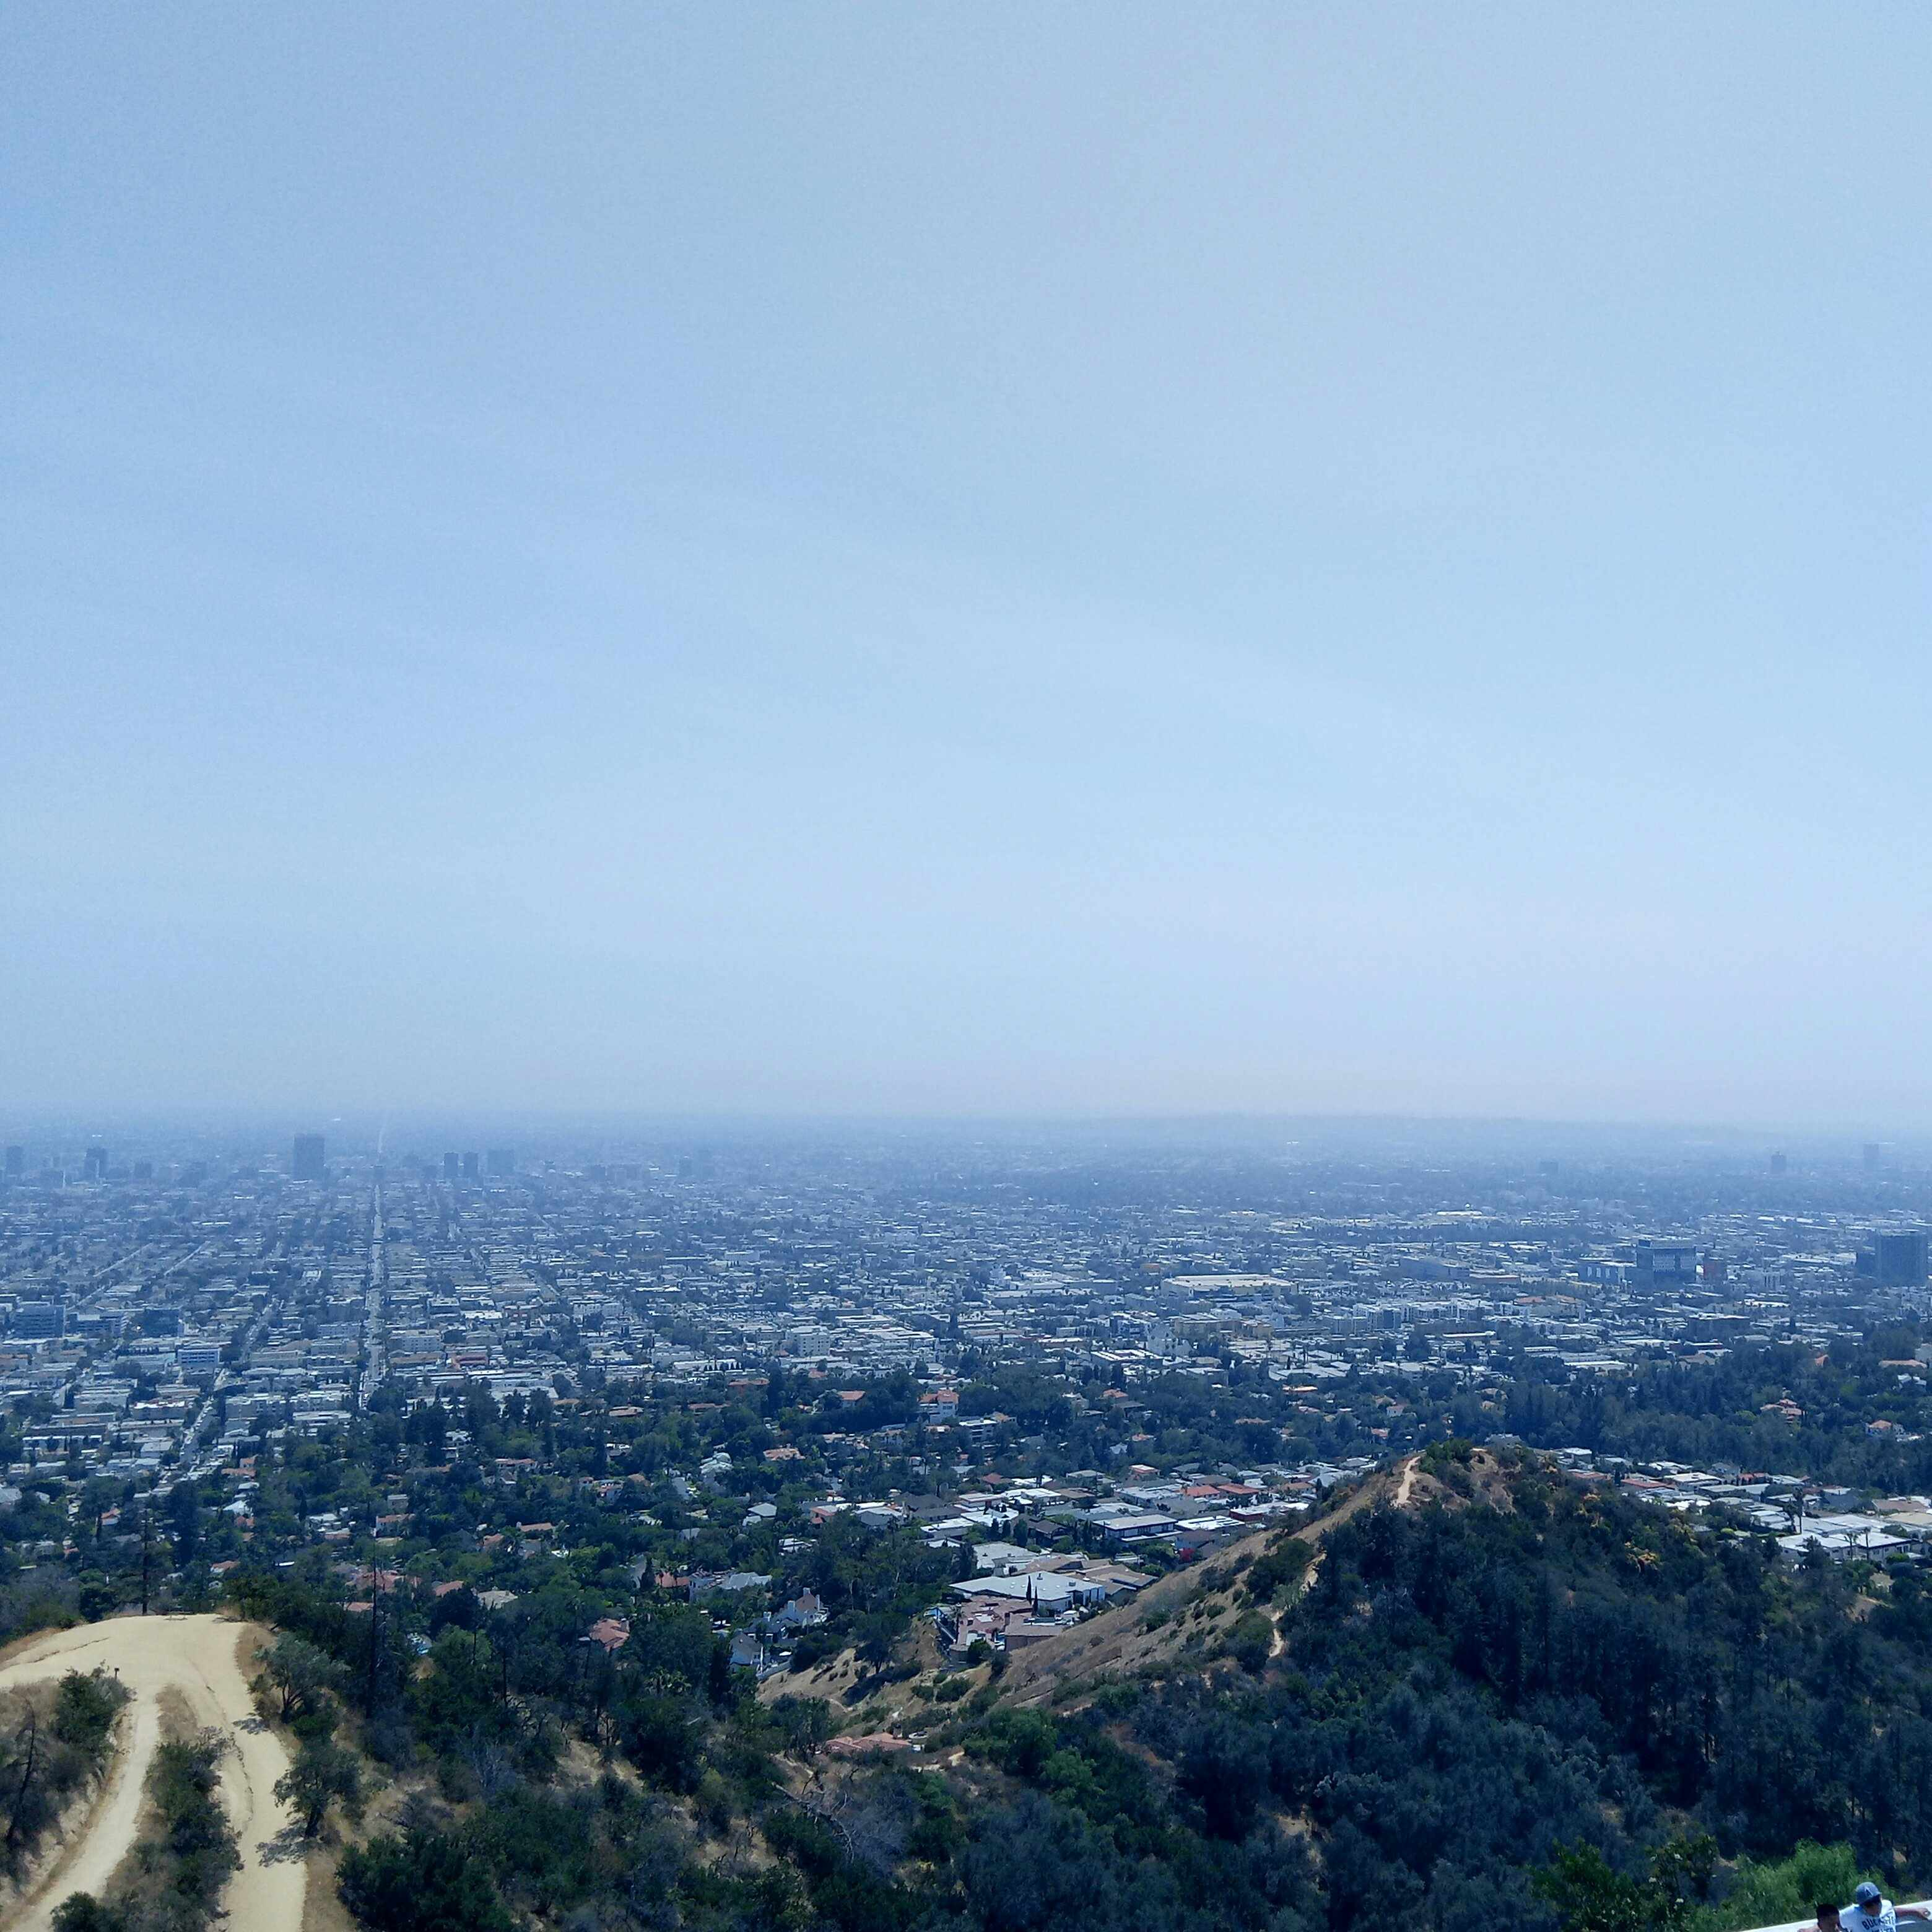 An overview of Los Angeles.